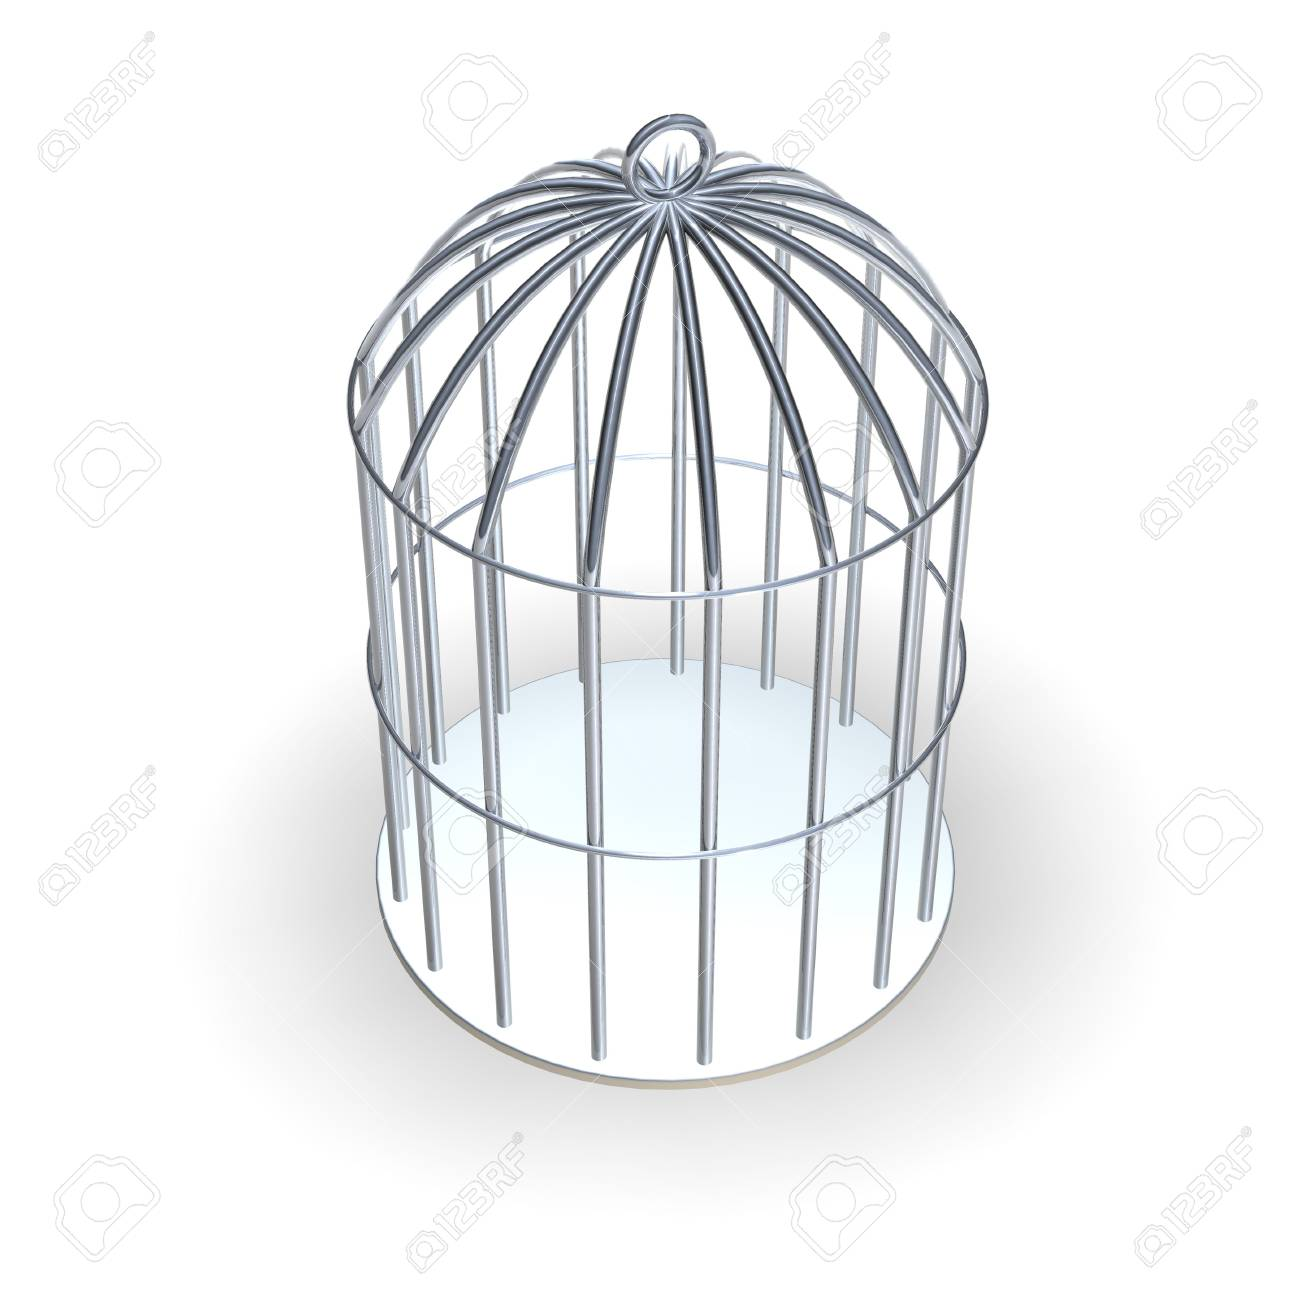 Shiny metallic 3d rendered cage Stock Photo - 520139